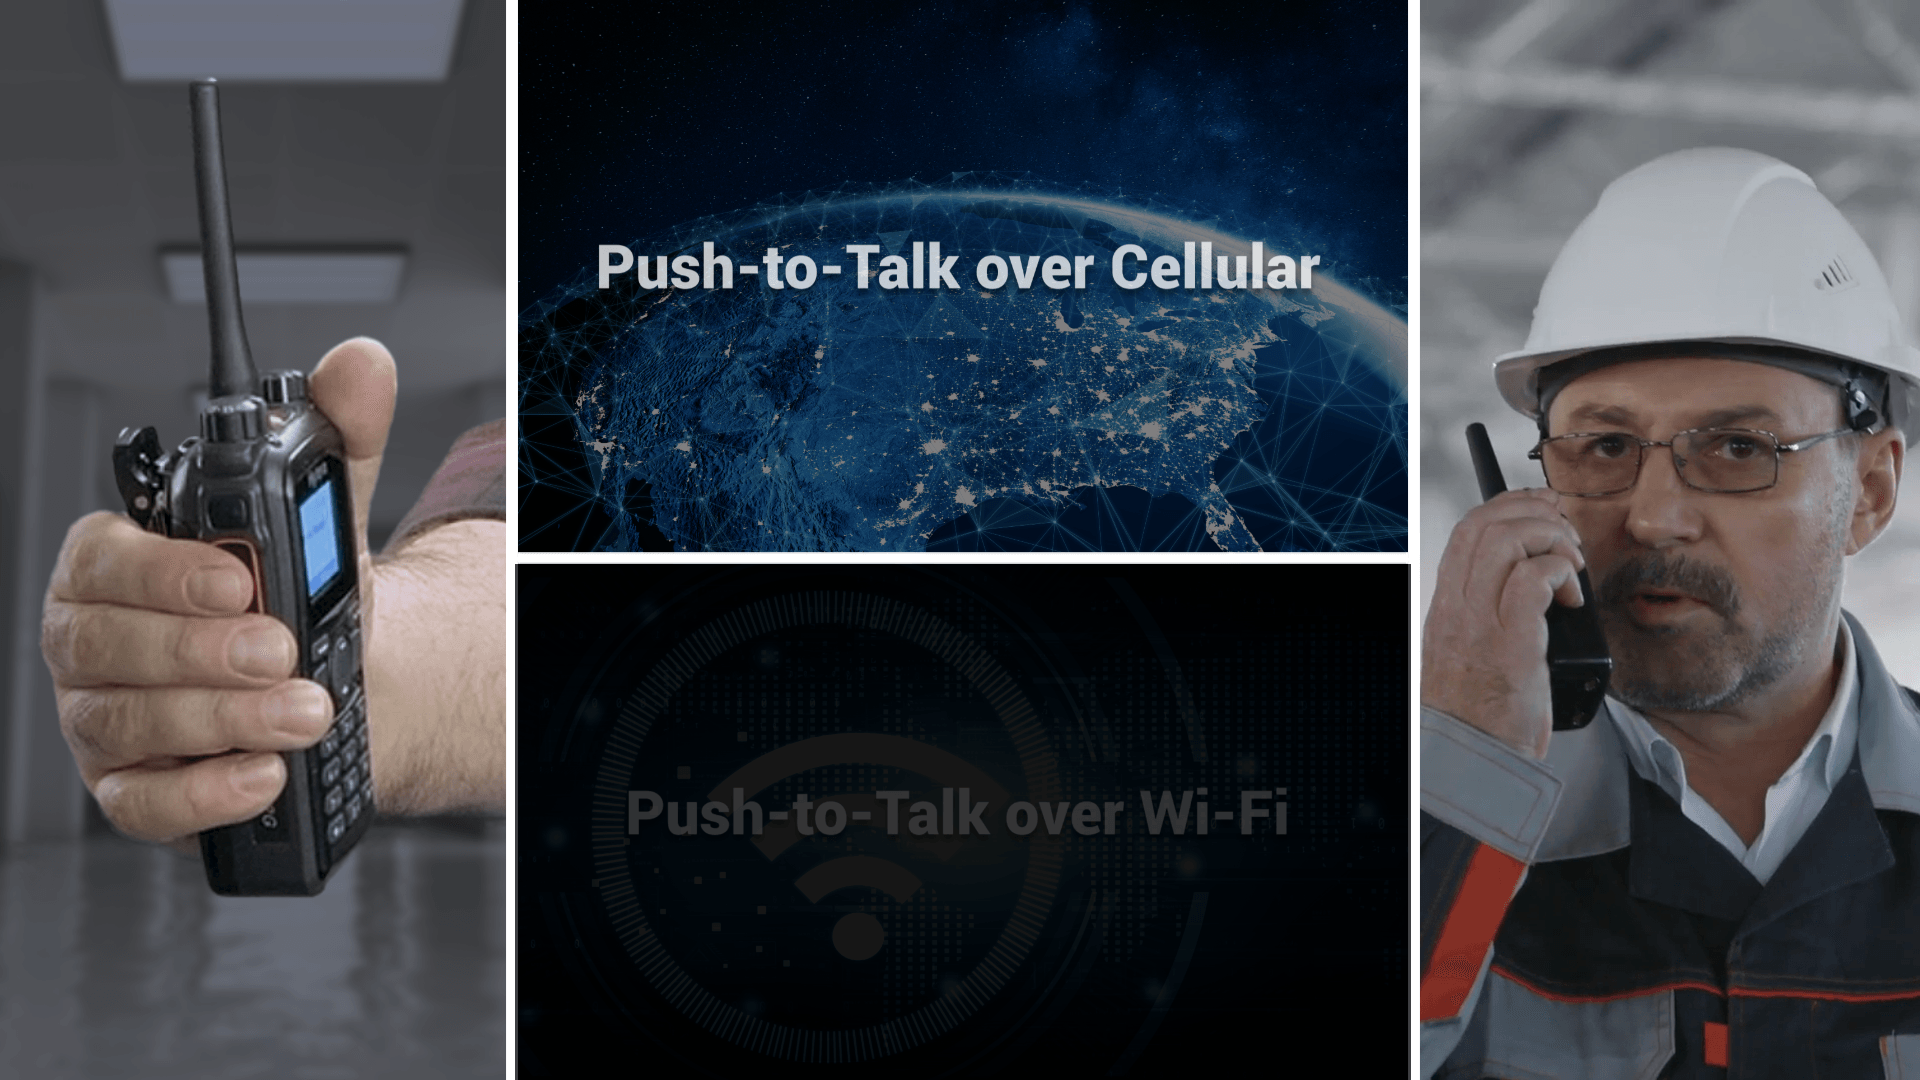 Push-to-Talk over Cellular (PoC)